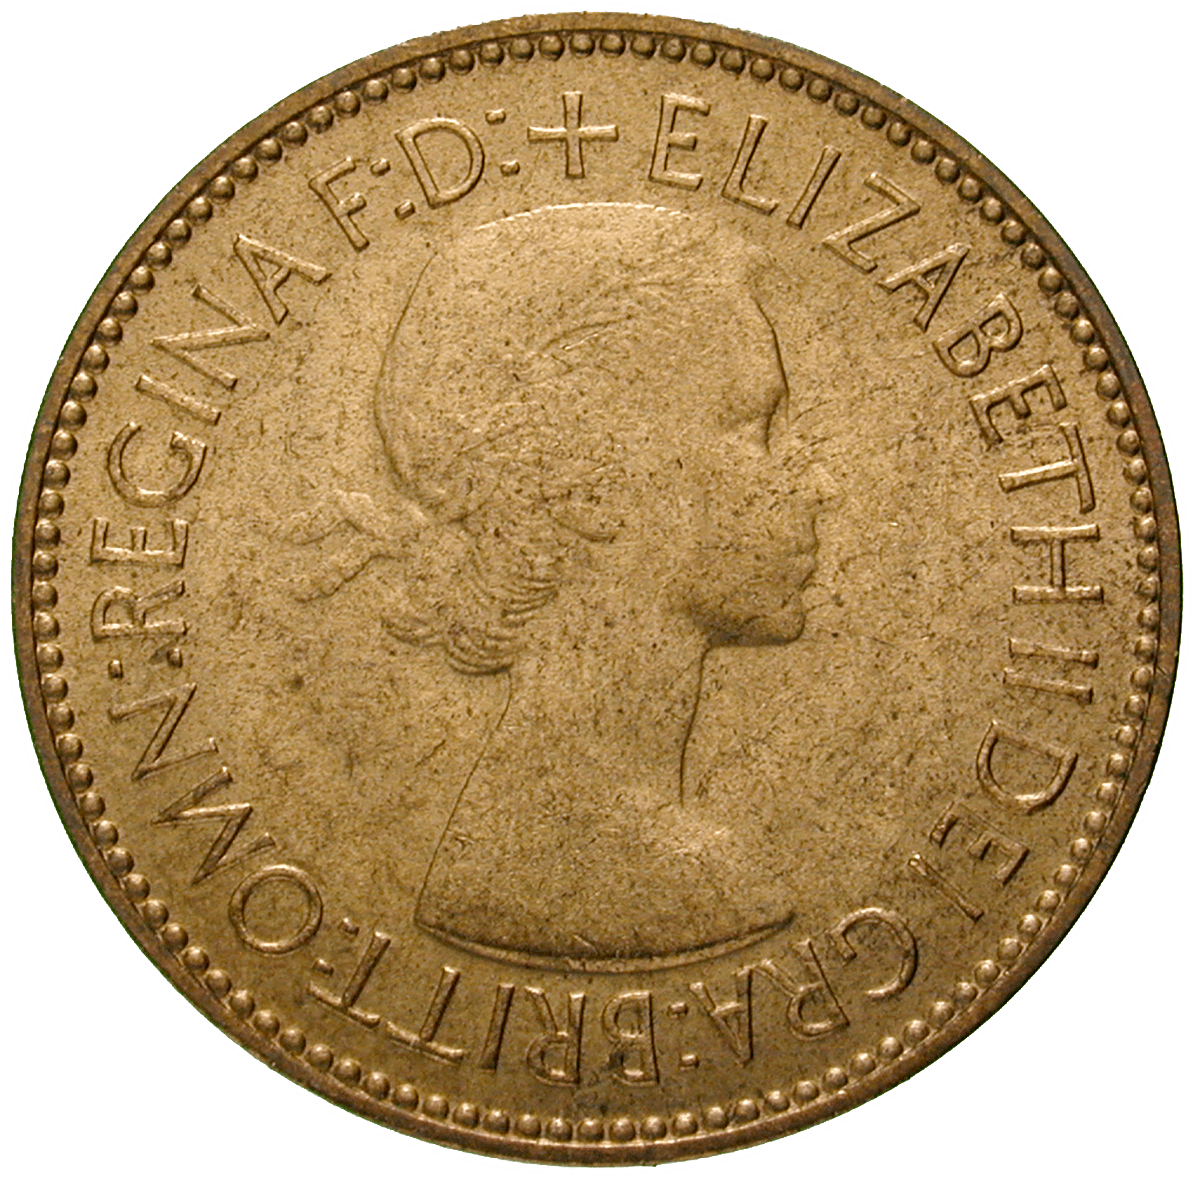 United Kingdom of Great Britain, Elizabeth II, 1/2 Penny 1953 (obverse)